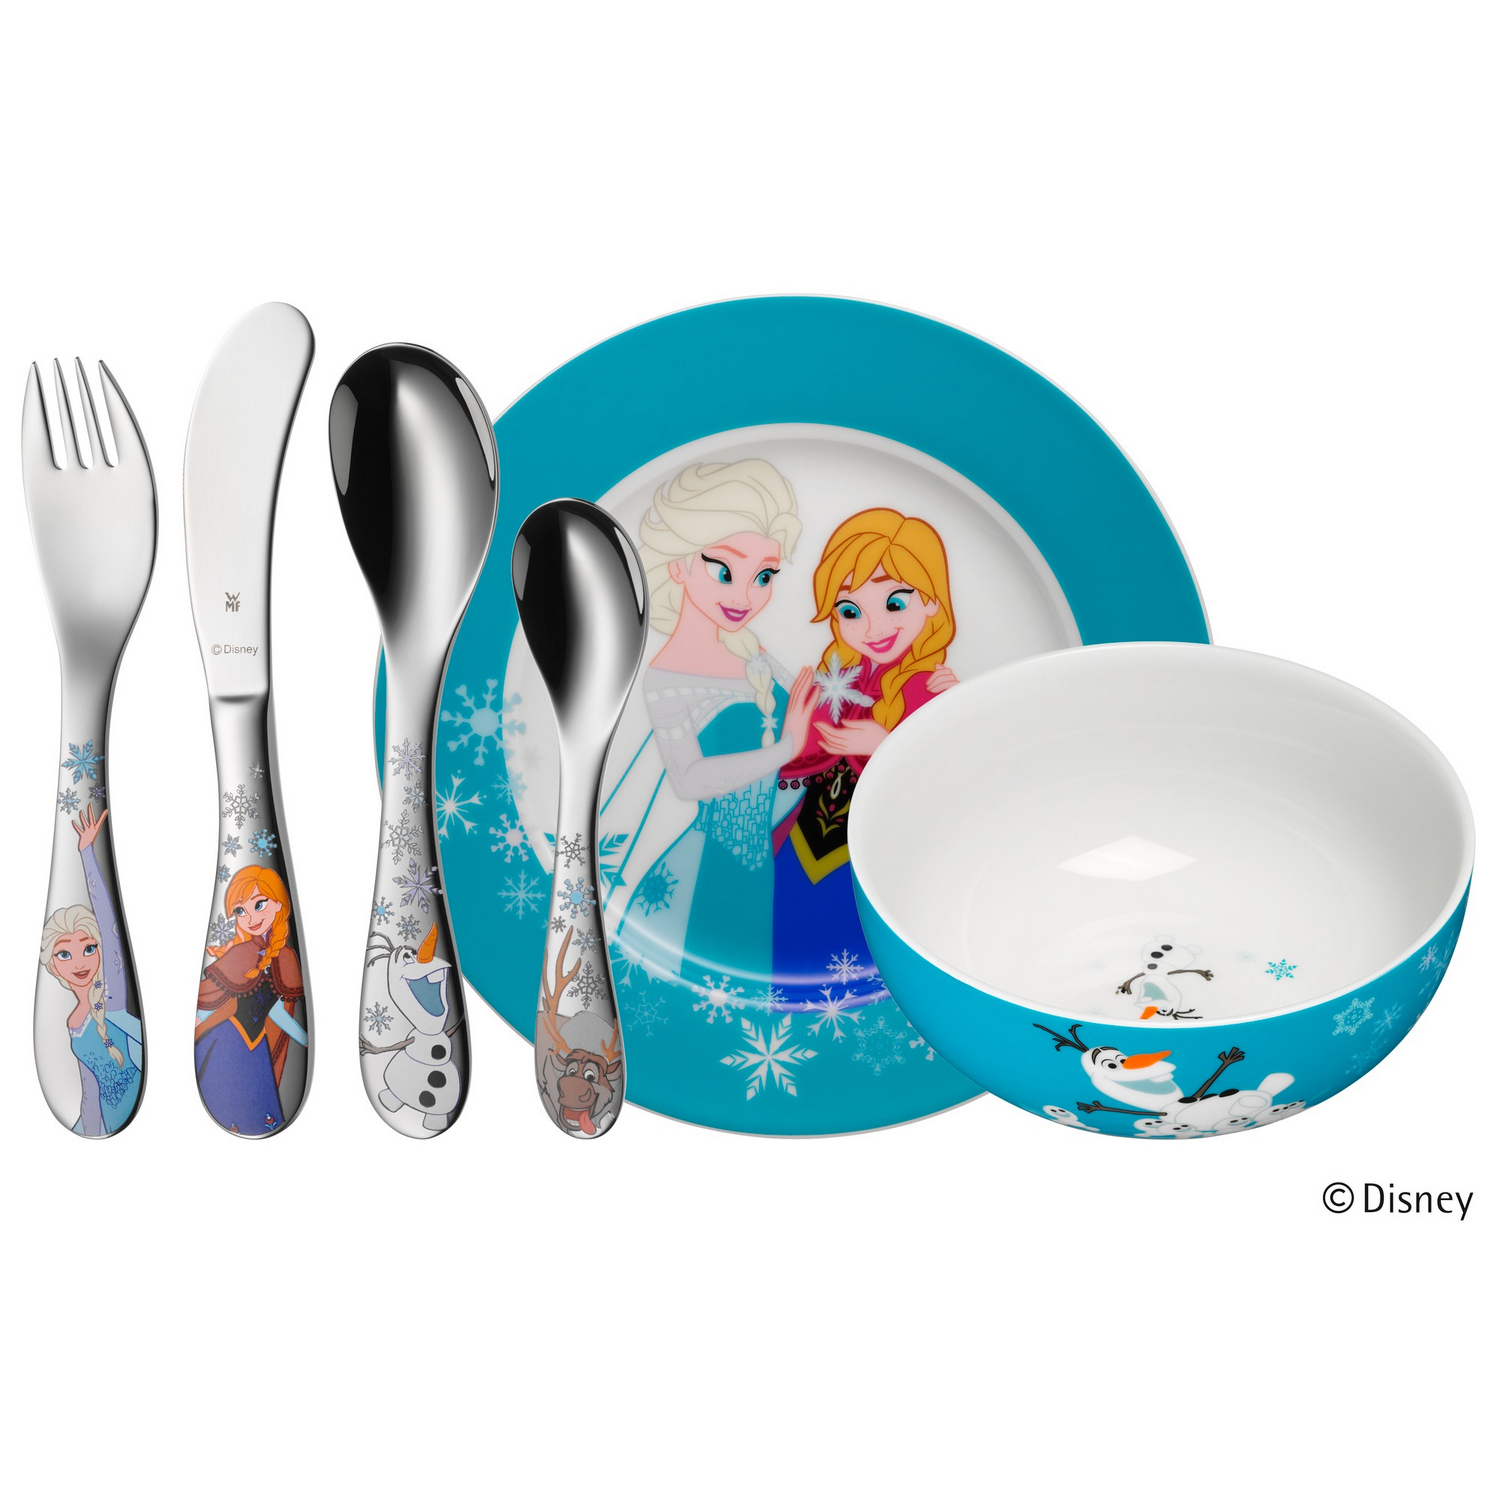 WMF Disney Frozen Kinder-Set, 6-tlg 12.8600.9964 KINDERGESCHIRRSET